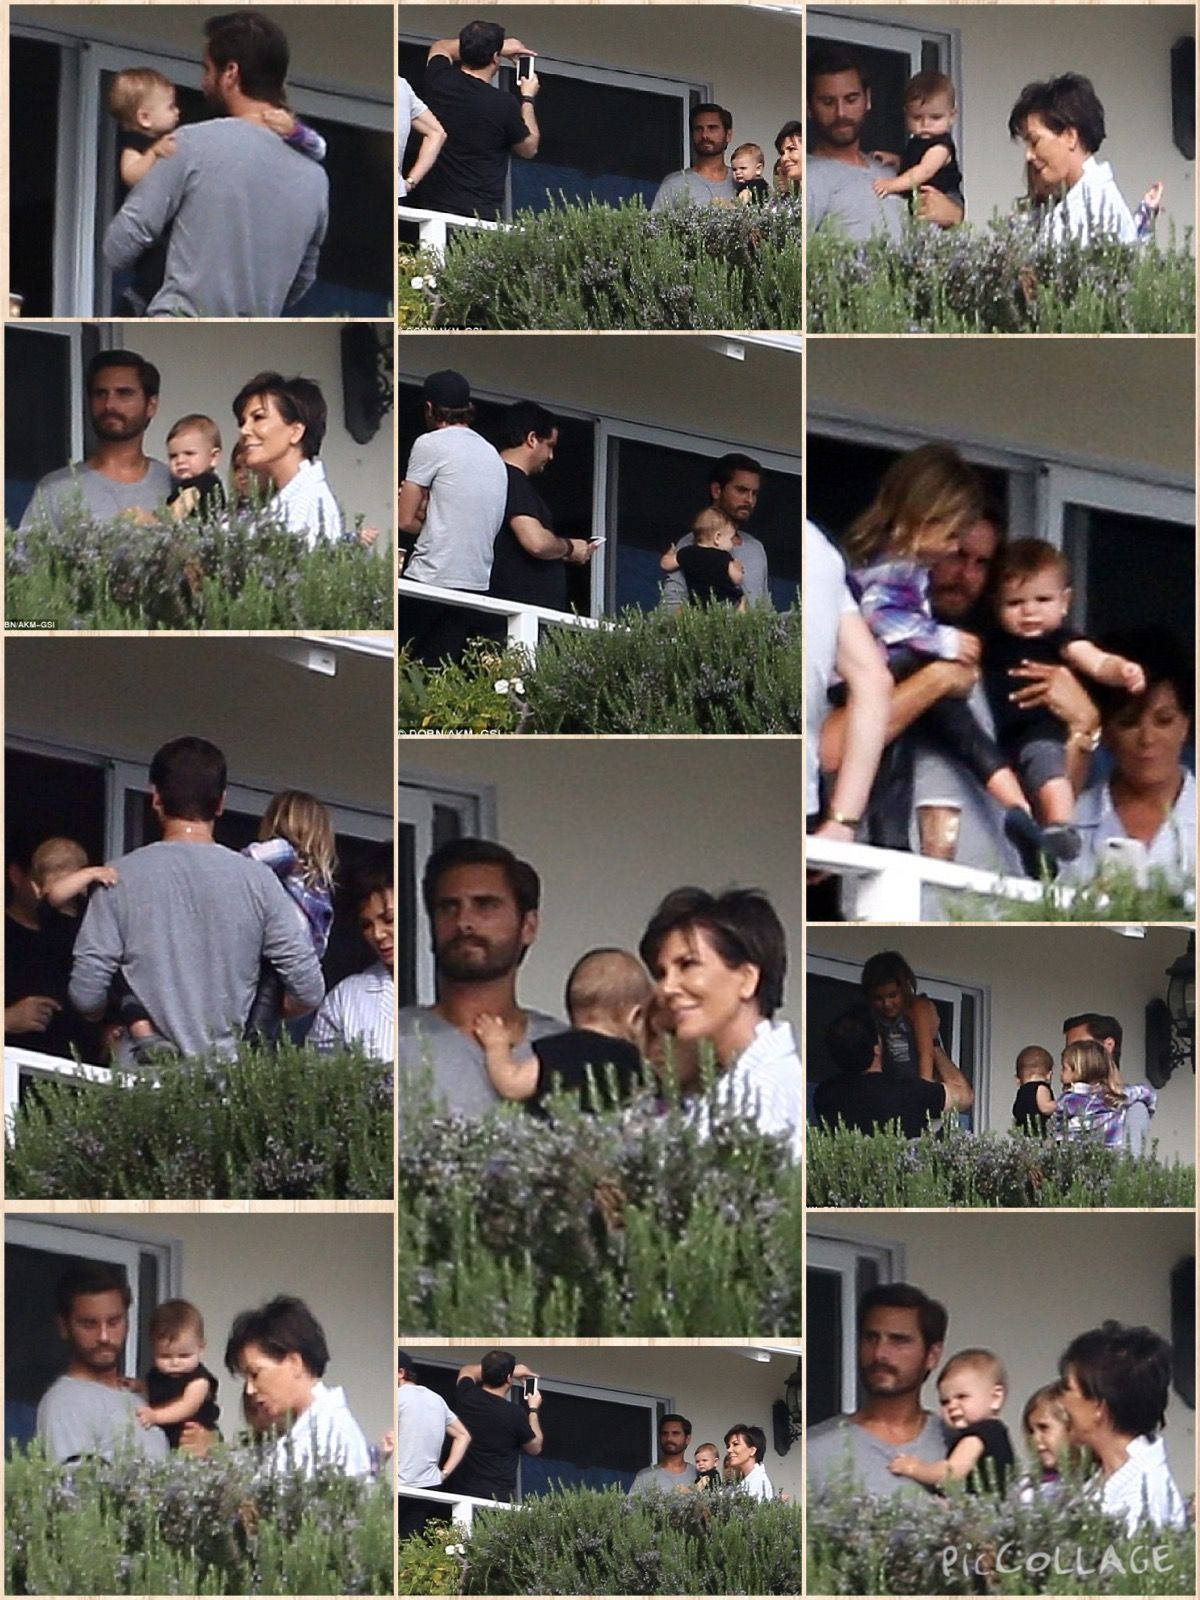 Kris Jenner Brought Her Grandchildren Reign Penelope And Mason To Visit Their Father Scott Disick In Rehab In Scott Disick Jenner Sisters Kylie Kristen Jenner